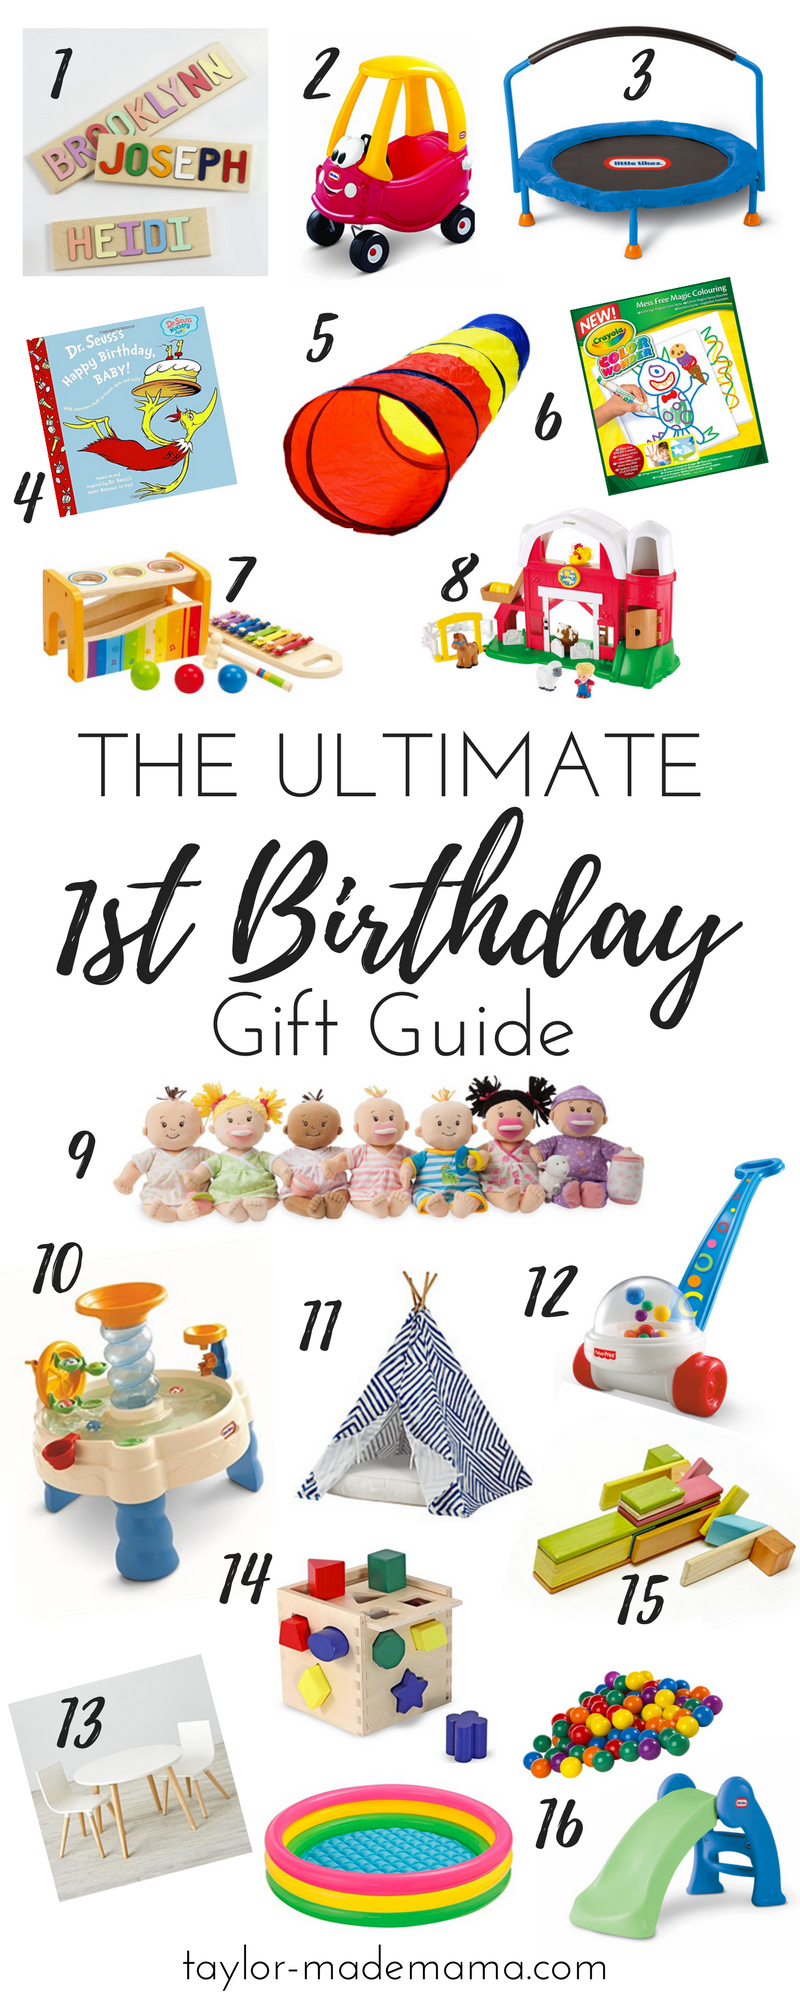 Your Ultimate 1st Birthday Gift Guide